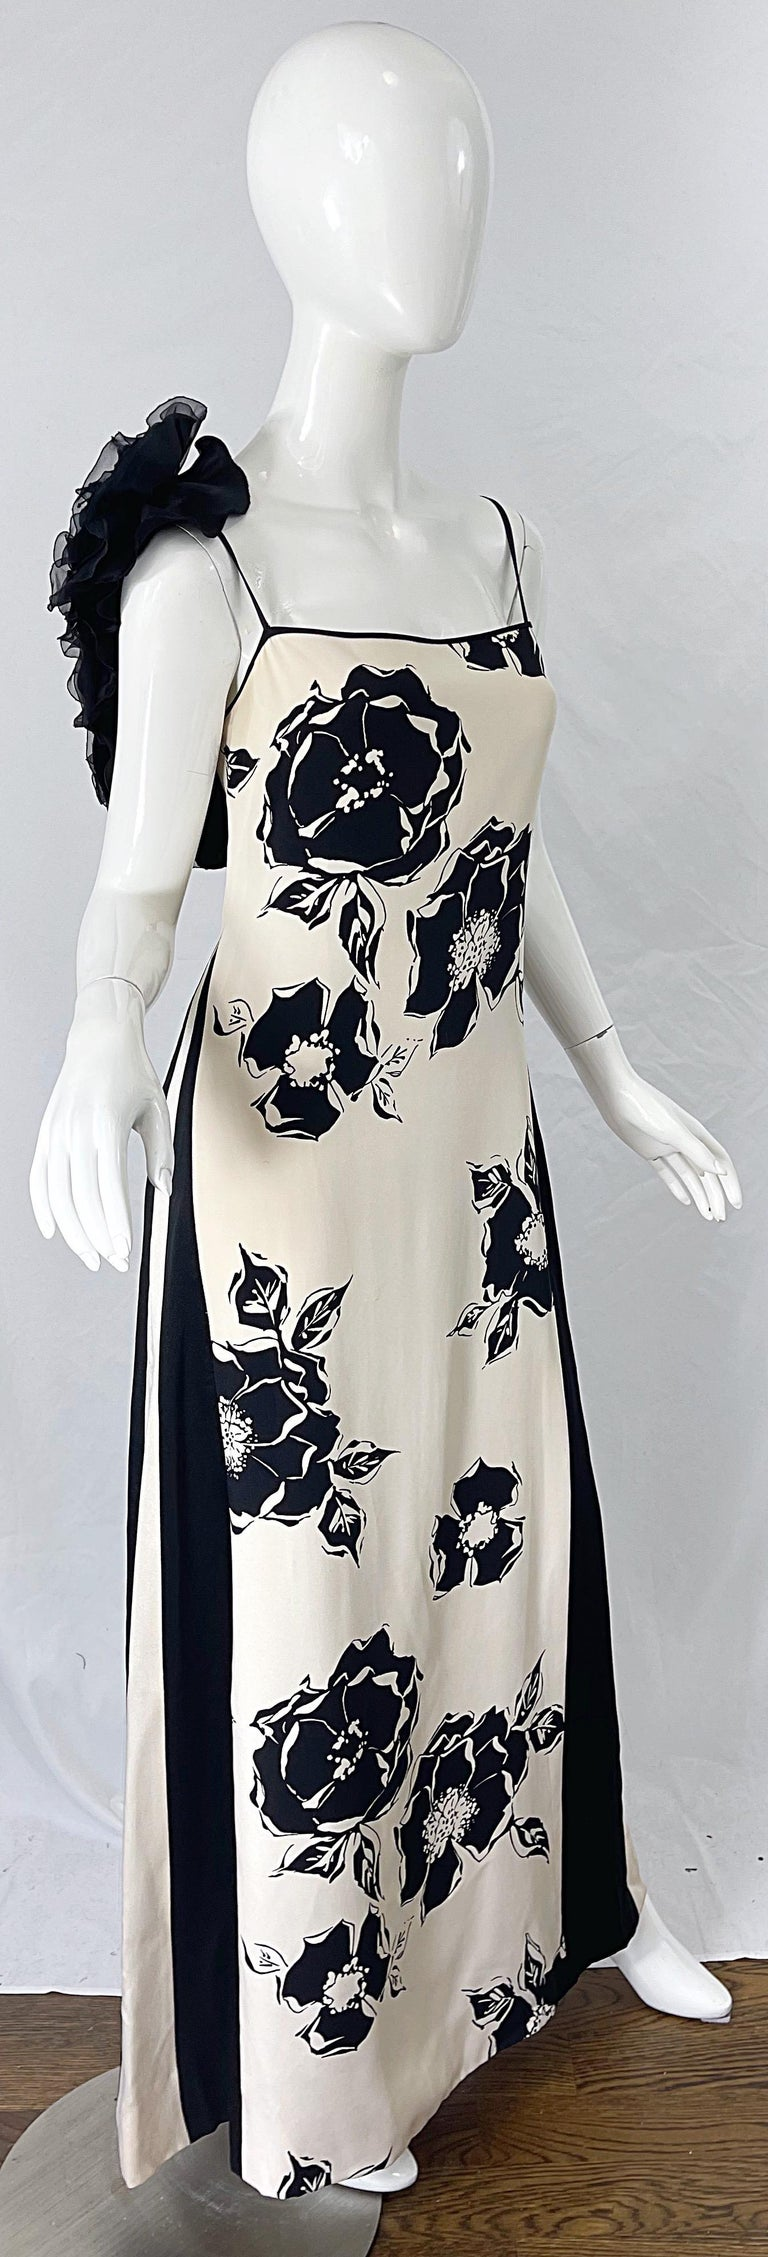 1990s James Galanos Black and White Rosette Sleeve Vintage 90s Silk Gown Dress For Sale 1